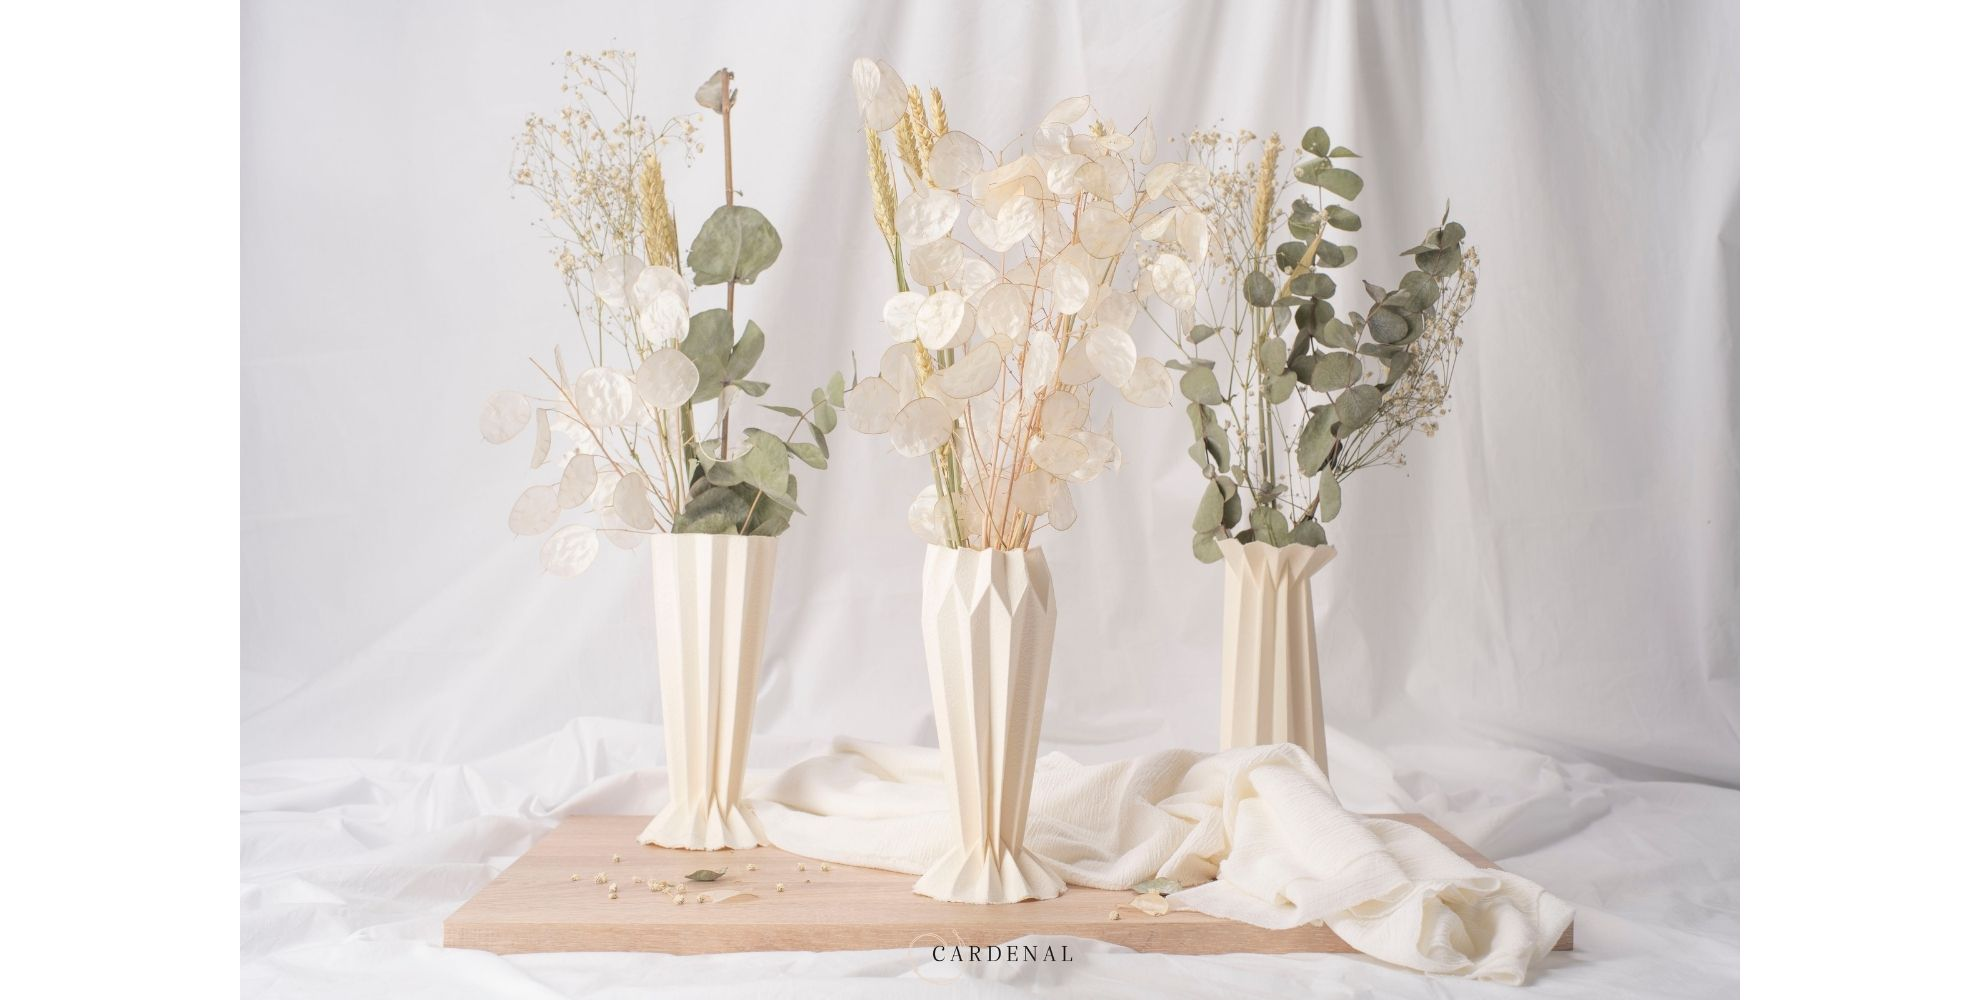 Reuse and recycling of dried flowers.